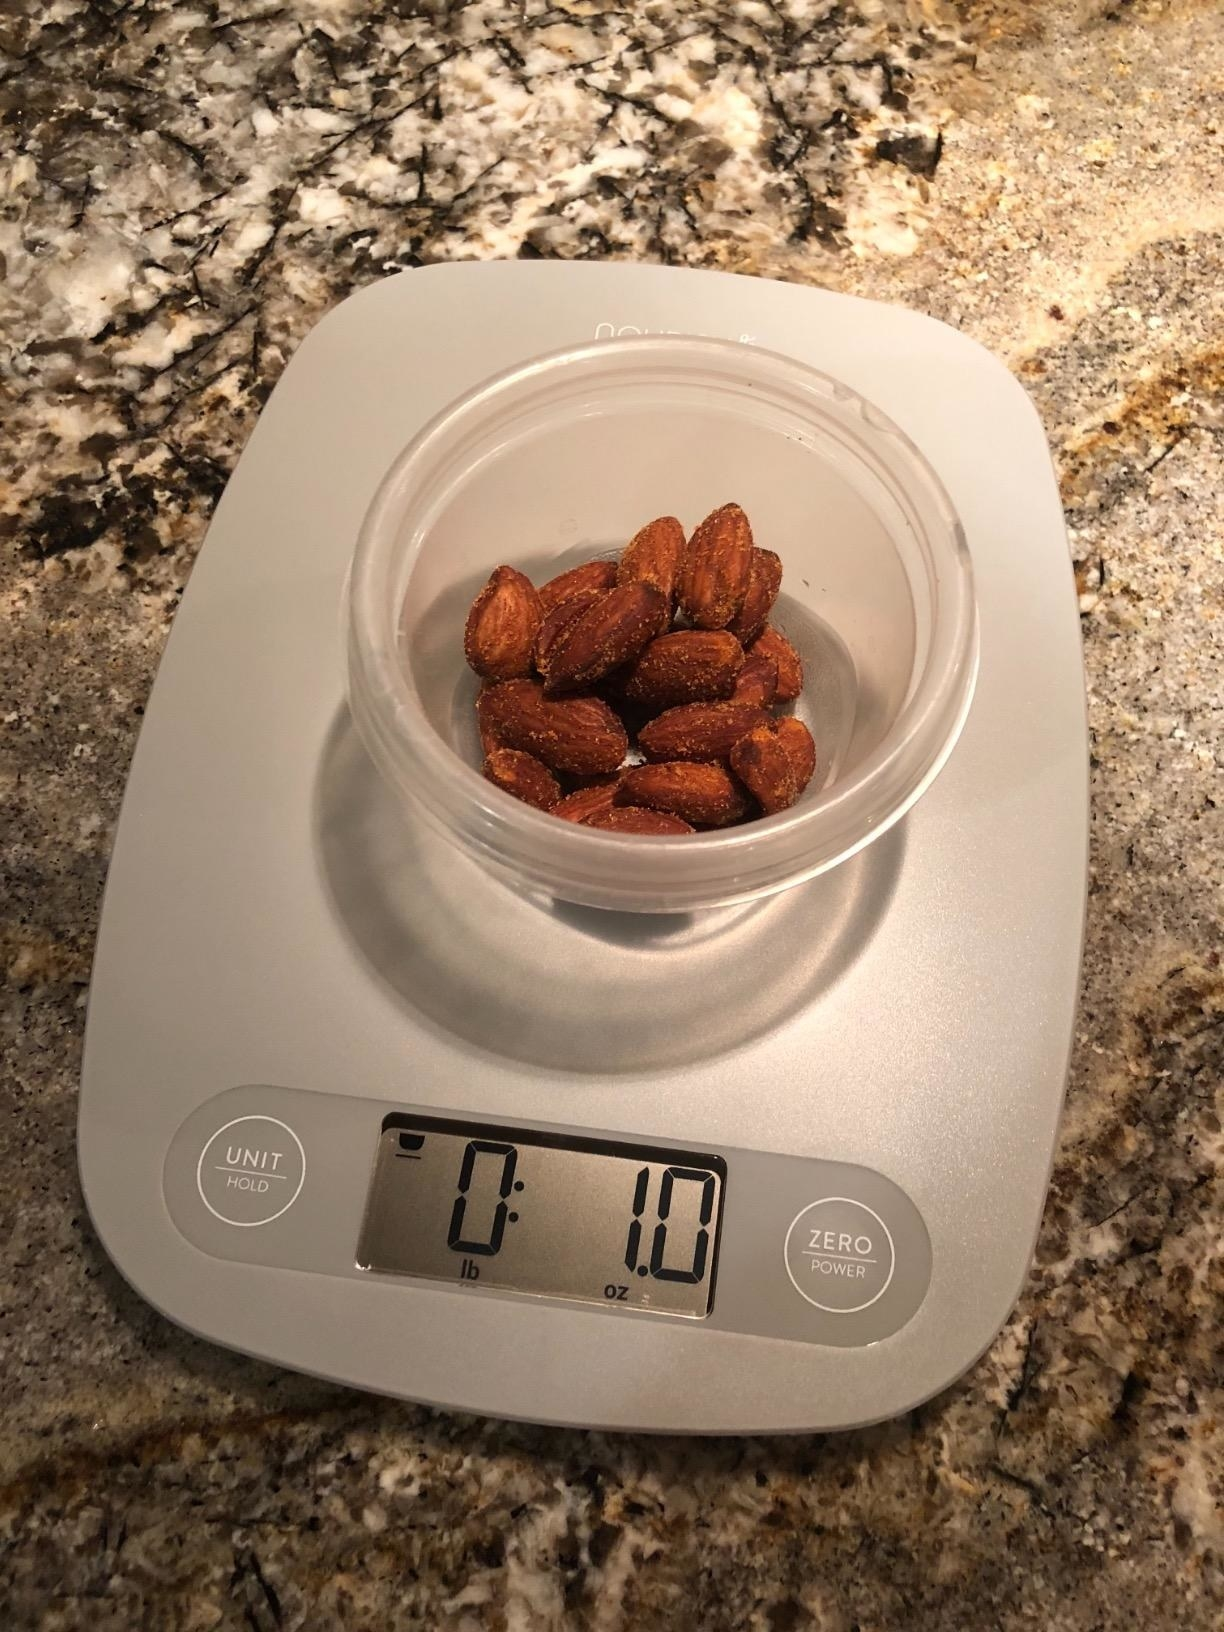 the scale weighing out a portion of almonds